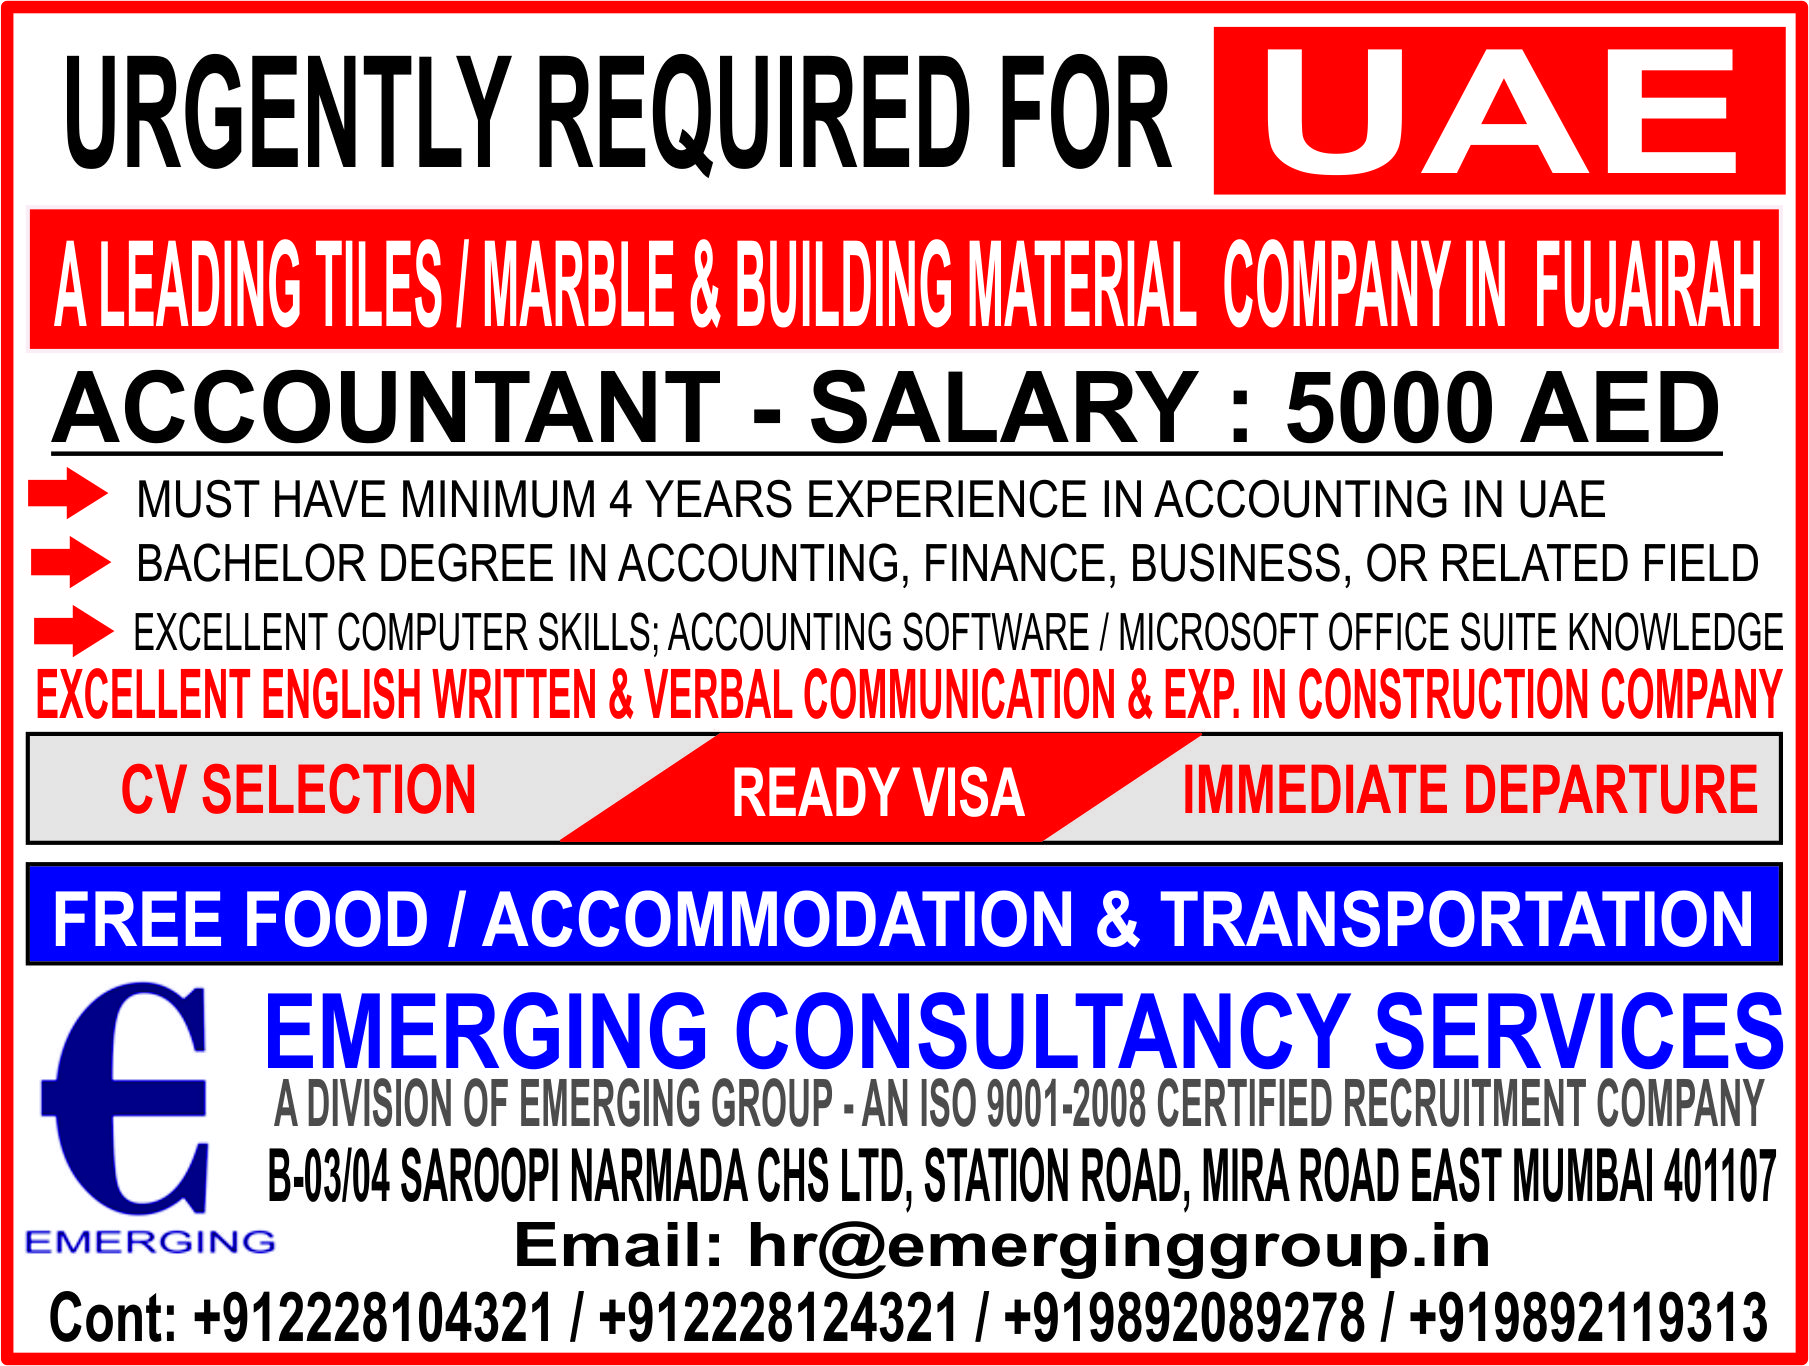 ACCOUNTANT - SALARY : 5000 AED - A LEADING TILES / MARBLE & BUILDING